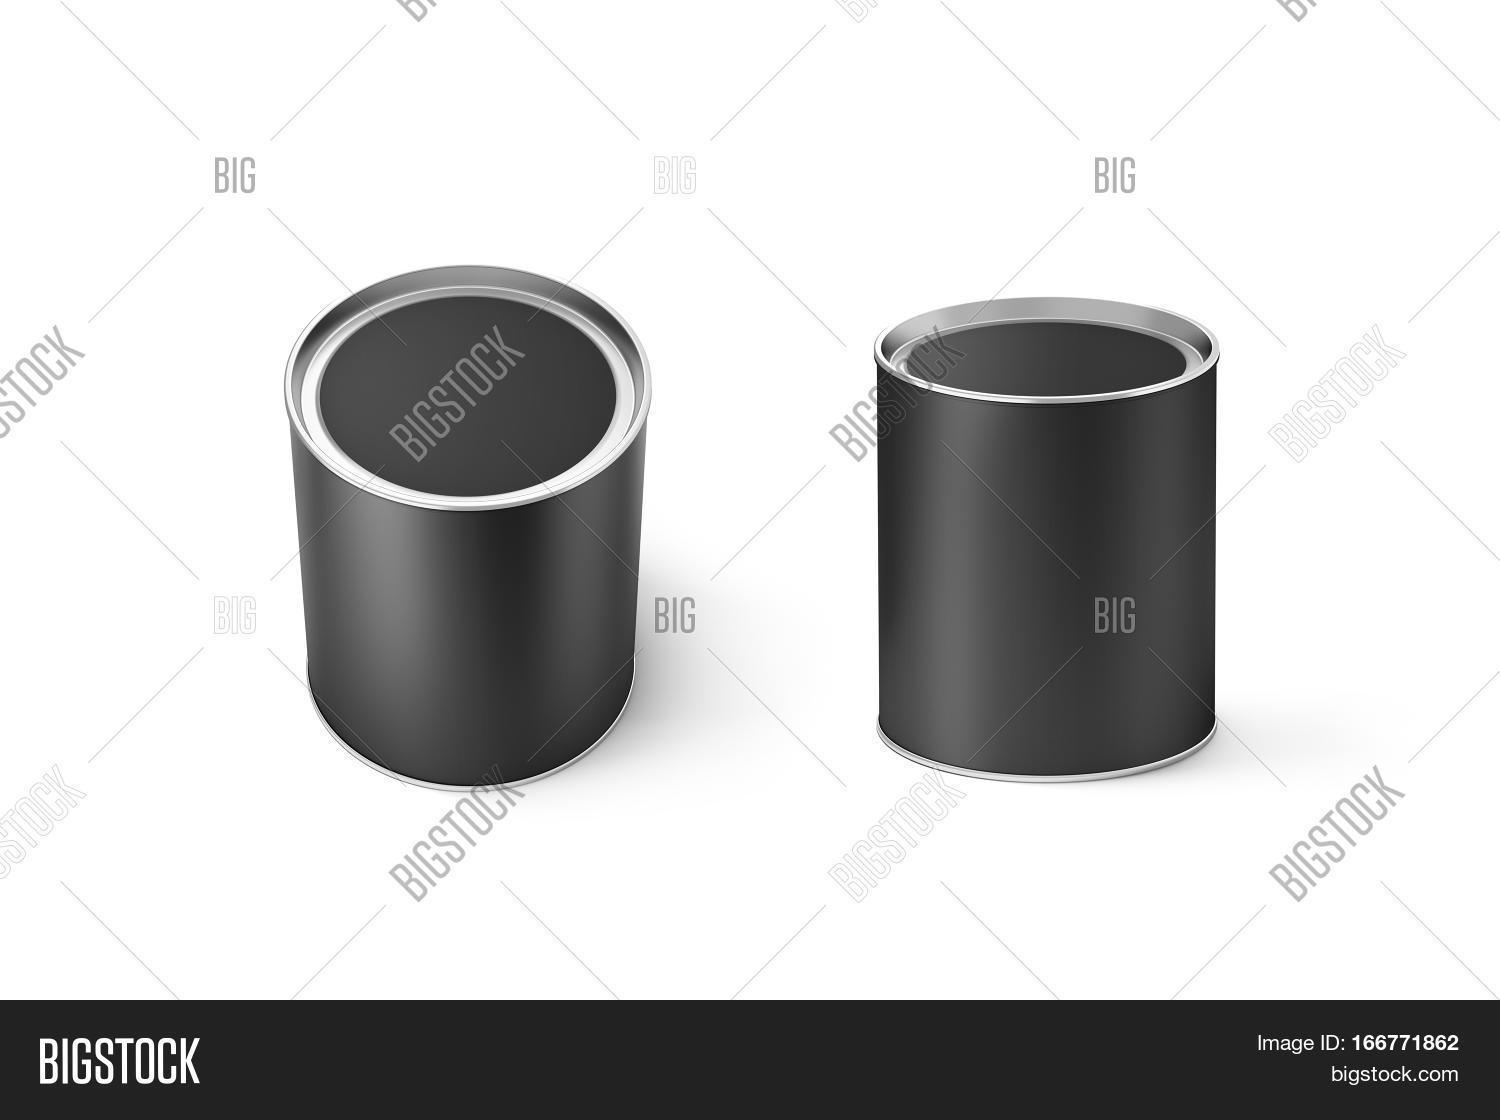 Blank Black Round Can Image Photo Free Trial Bigstock